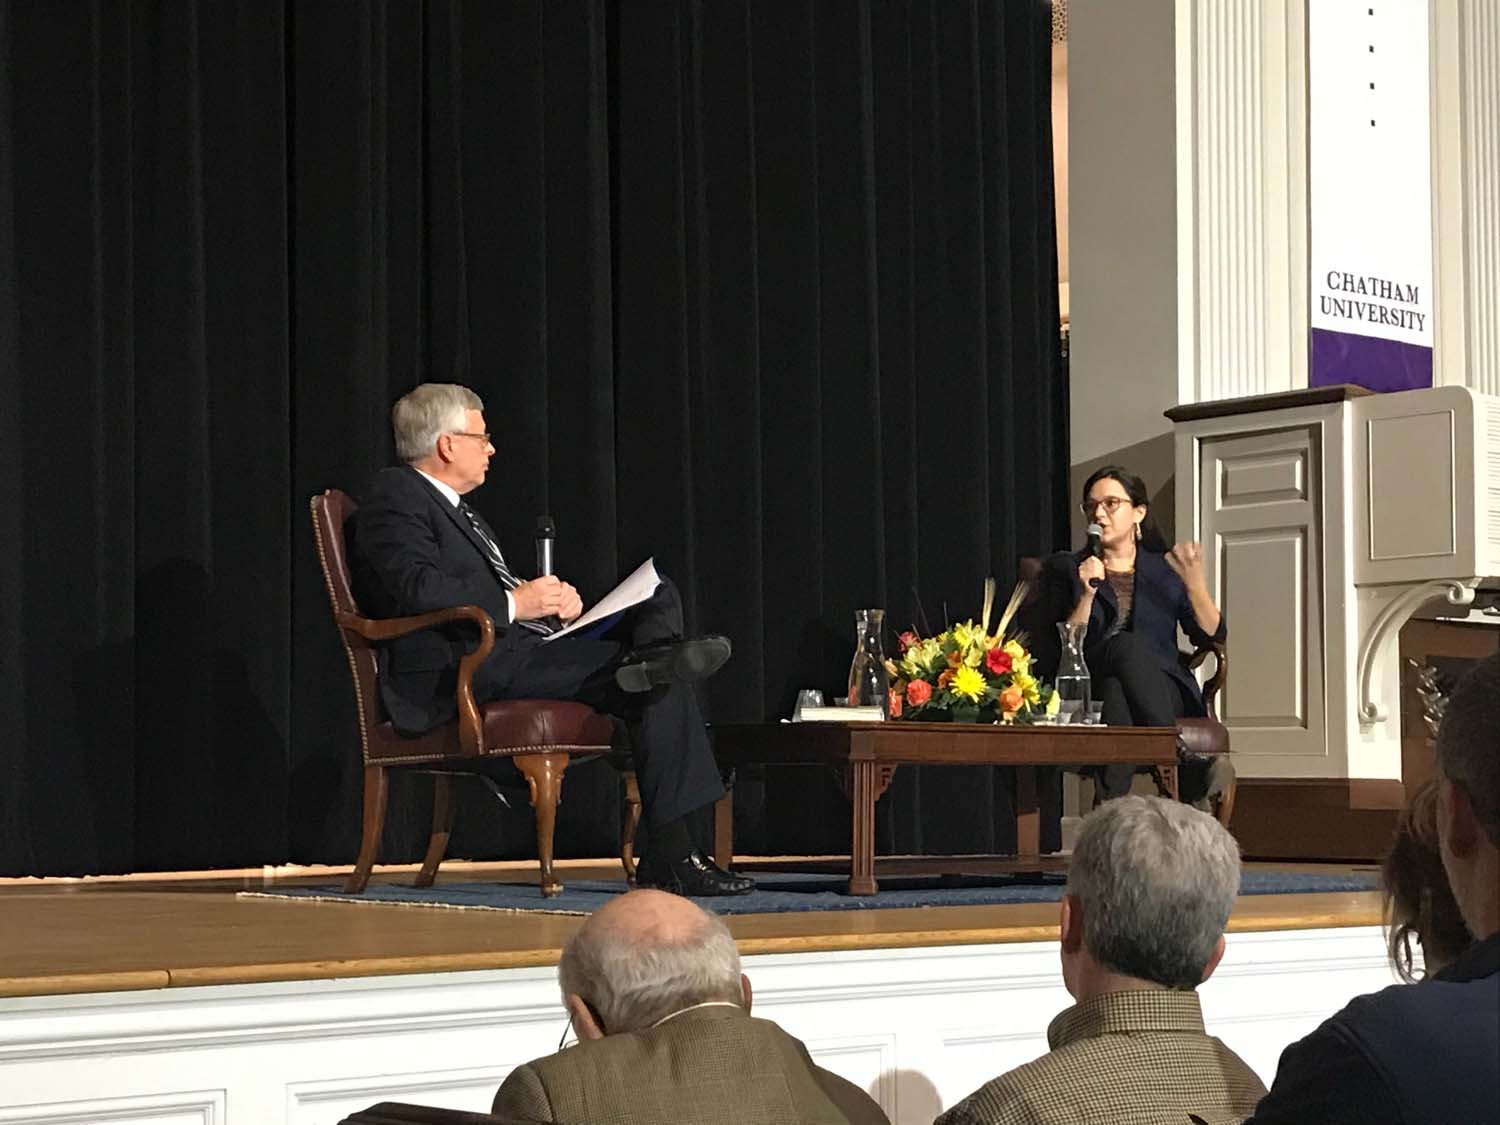 """Bari Weiss, opinion staff editor and writer for the New York Times, speaks about her book """"How to Fight Anti-Semitism"""" at Chatham's Campbell Memorial Chapel."""